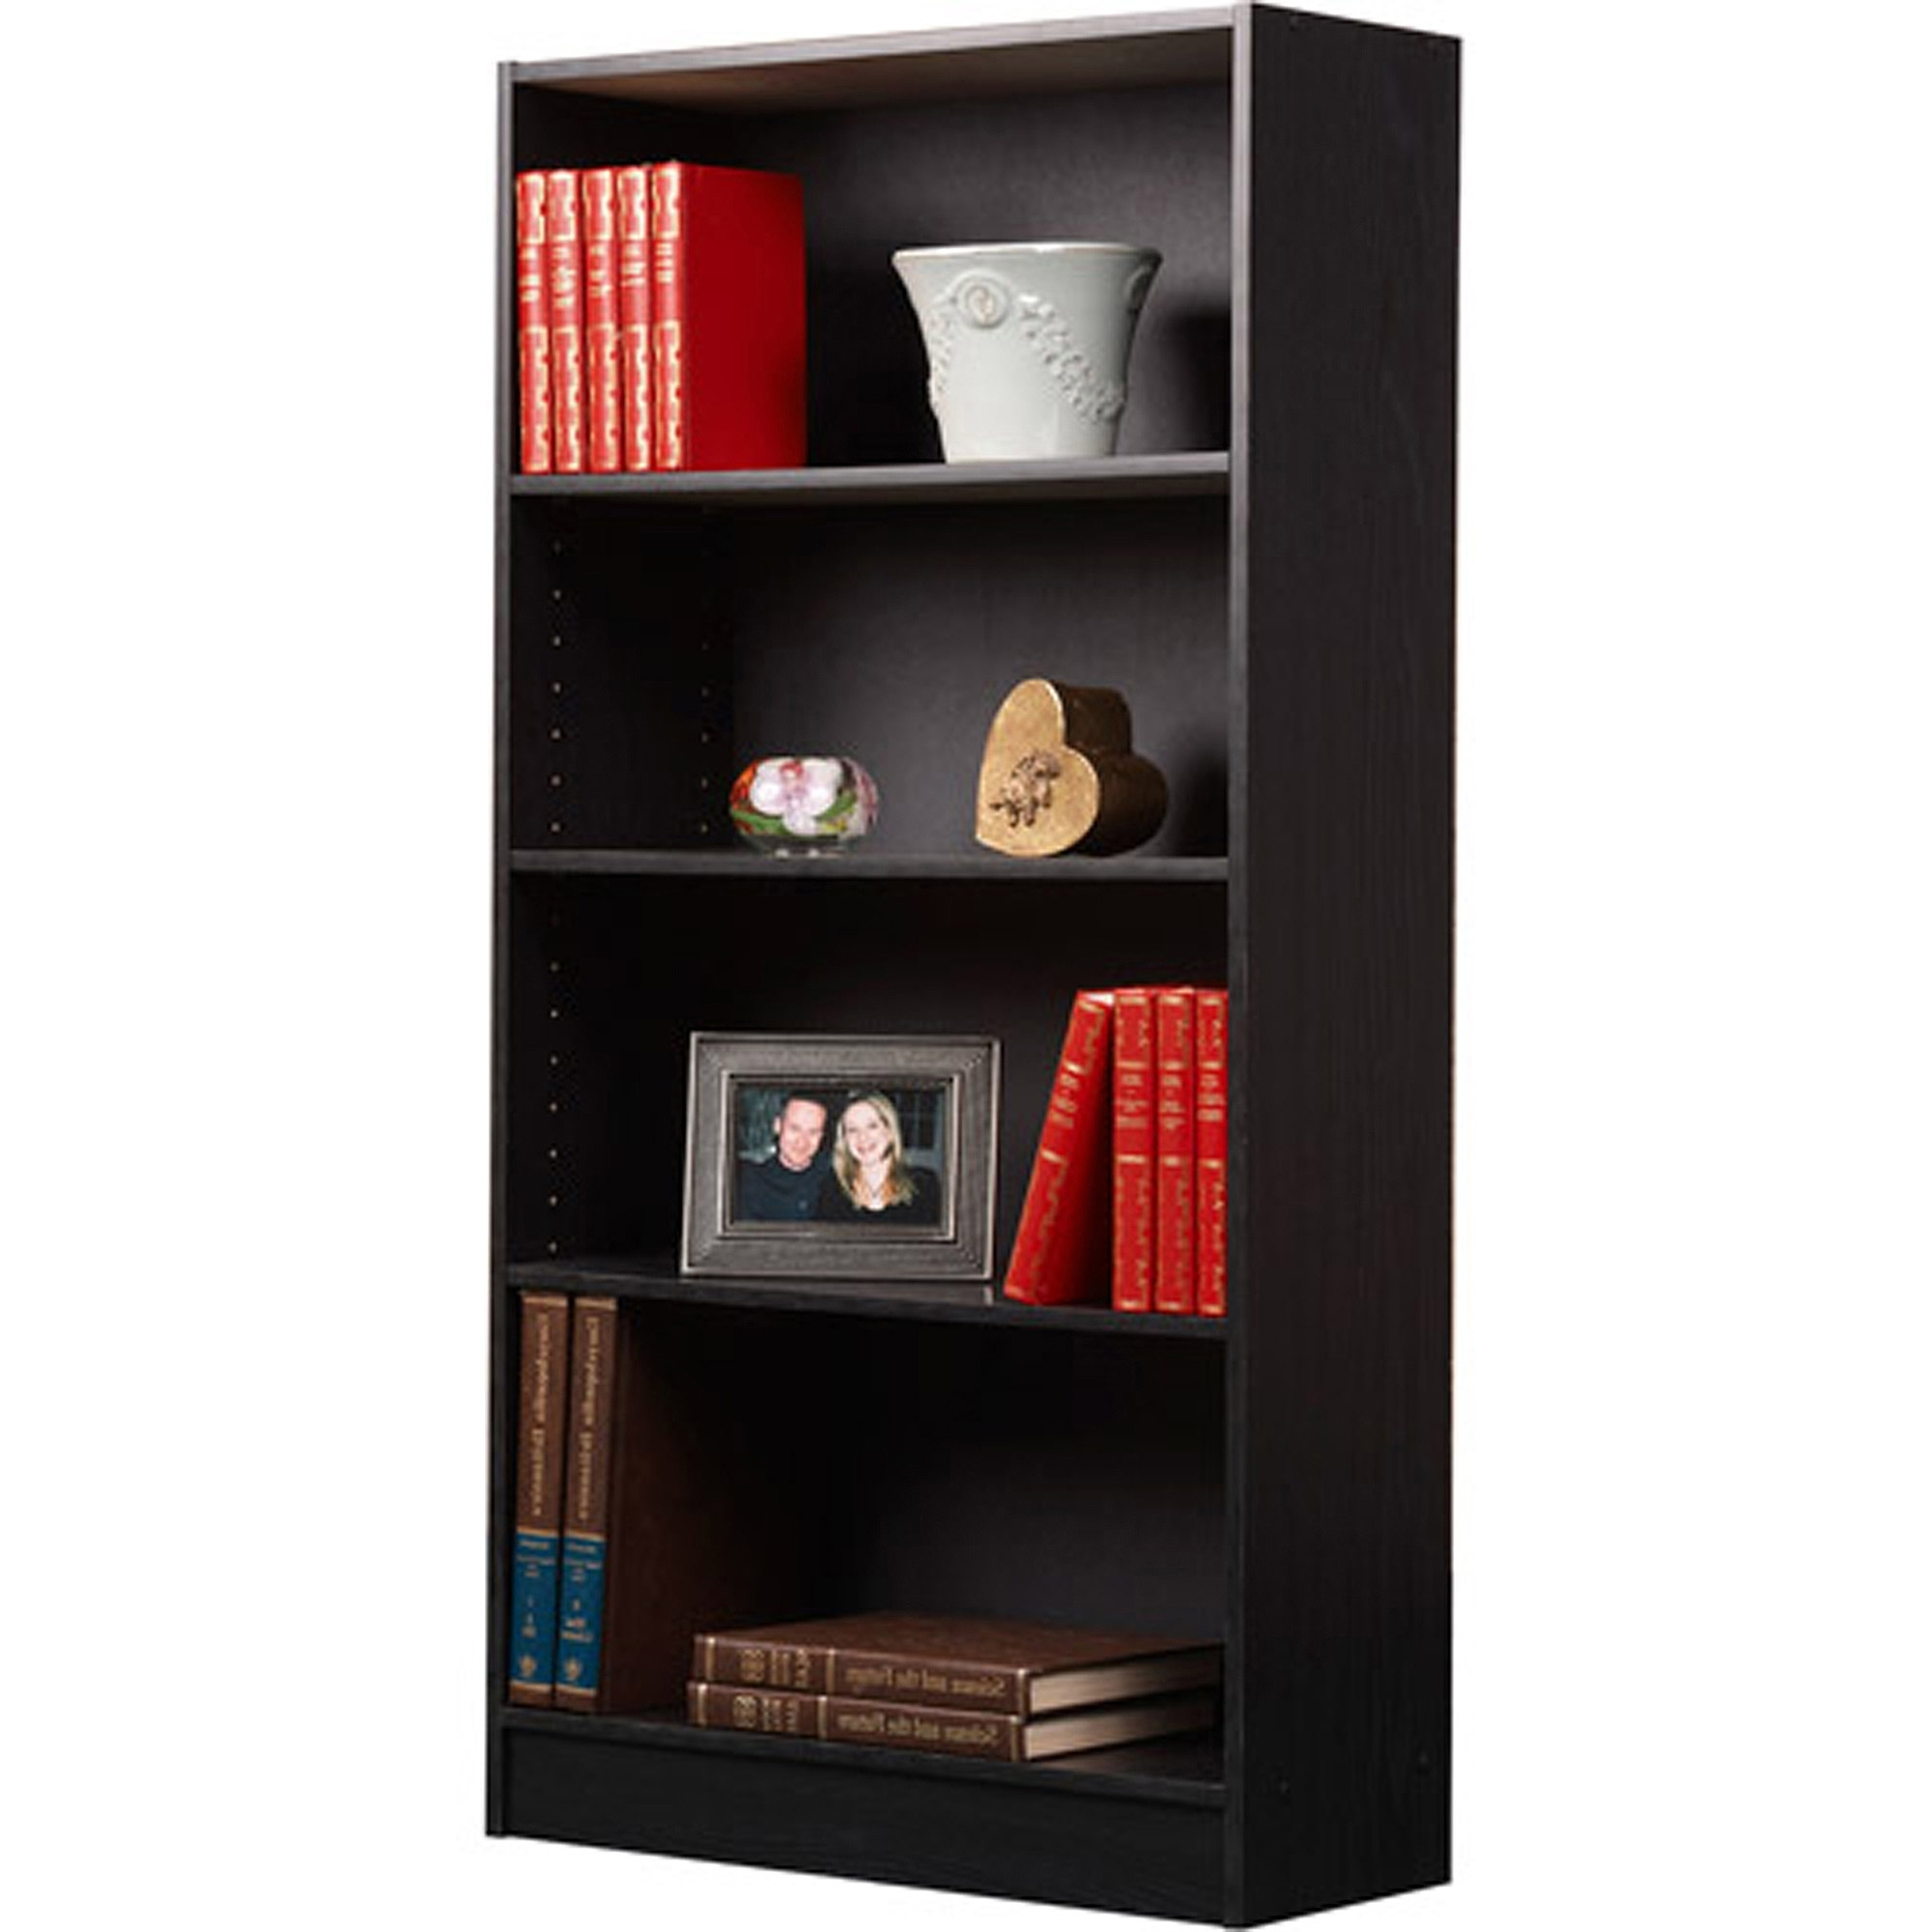 Orion 4 Shelf Bookcases, Set Of 2 – Walmart In Preferred Black Bookcases (View 12 of 15)